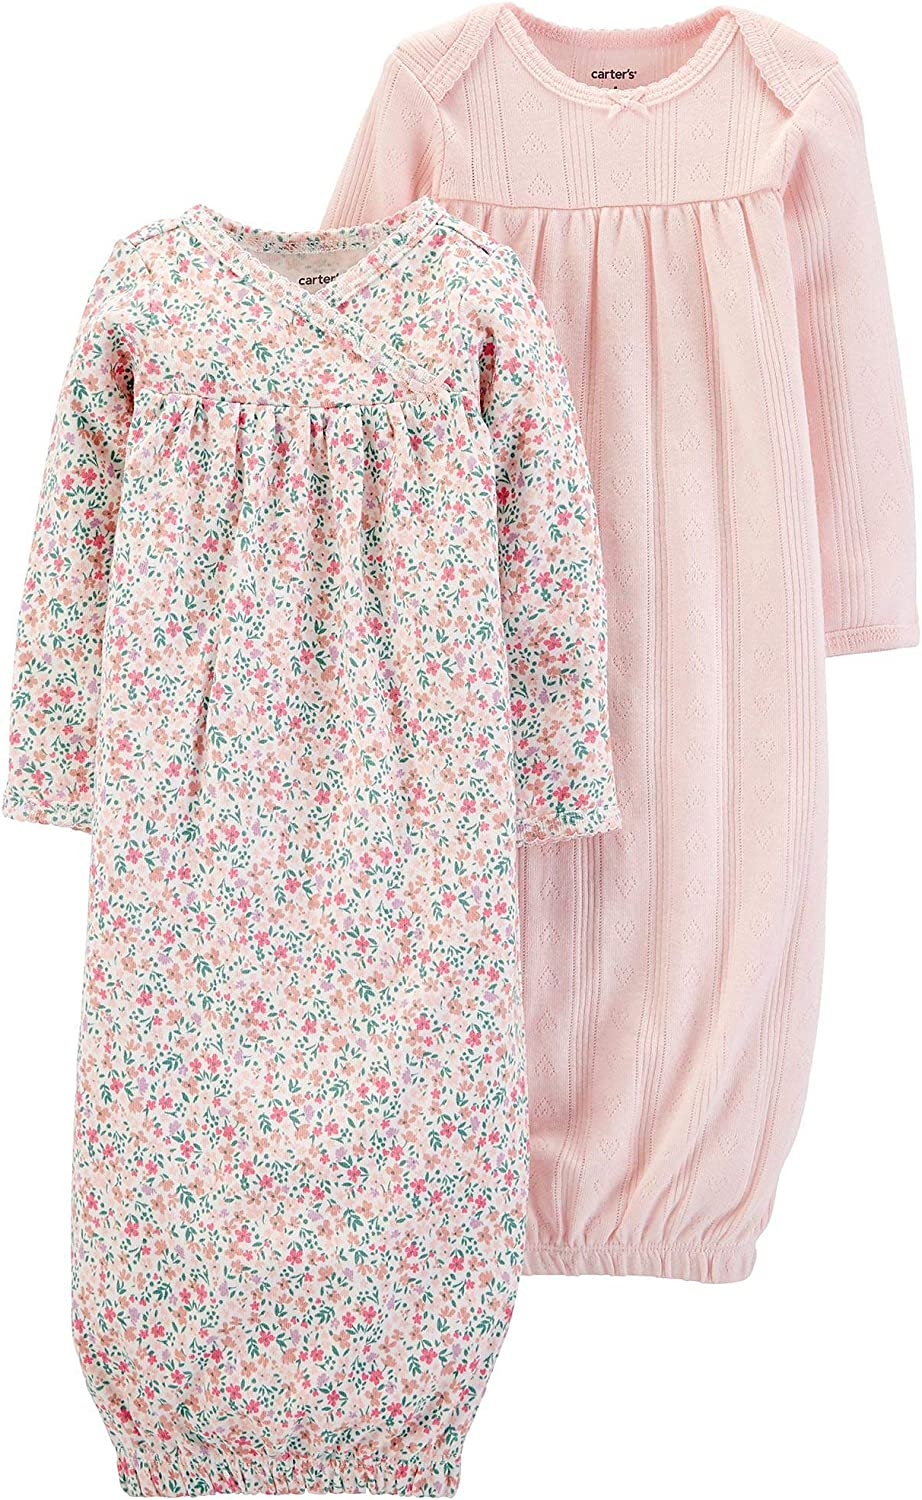 Carter's Baby Girls' 2-Pack Sleeper Gowns Pink Floral: Clothing